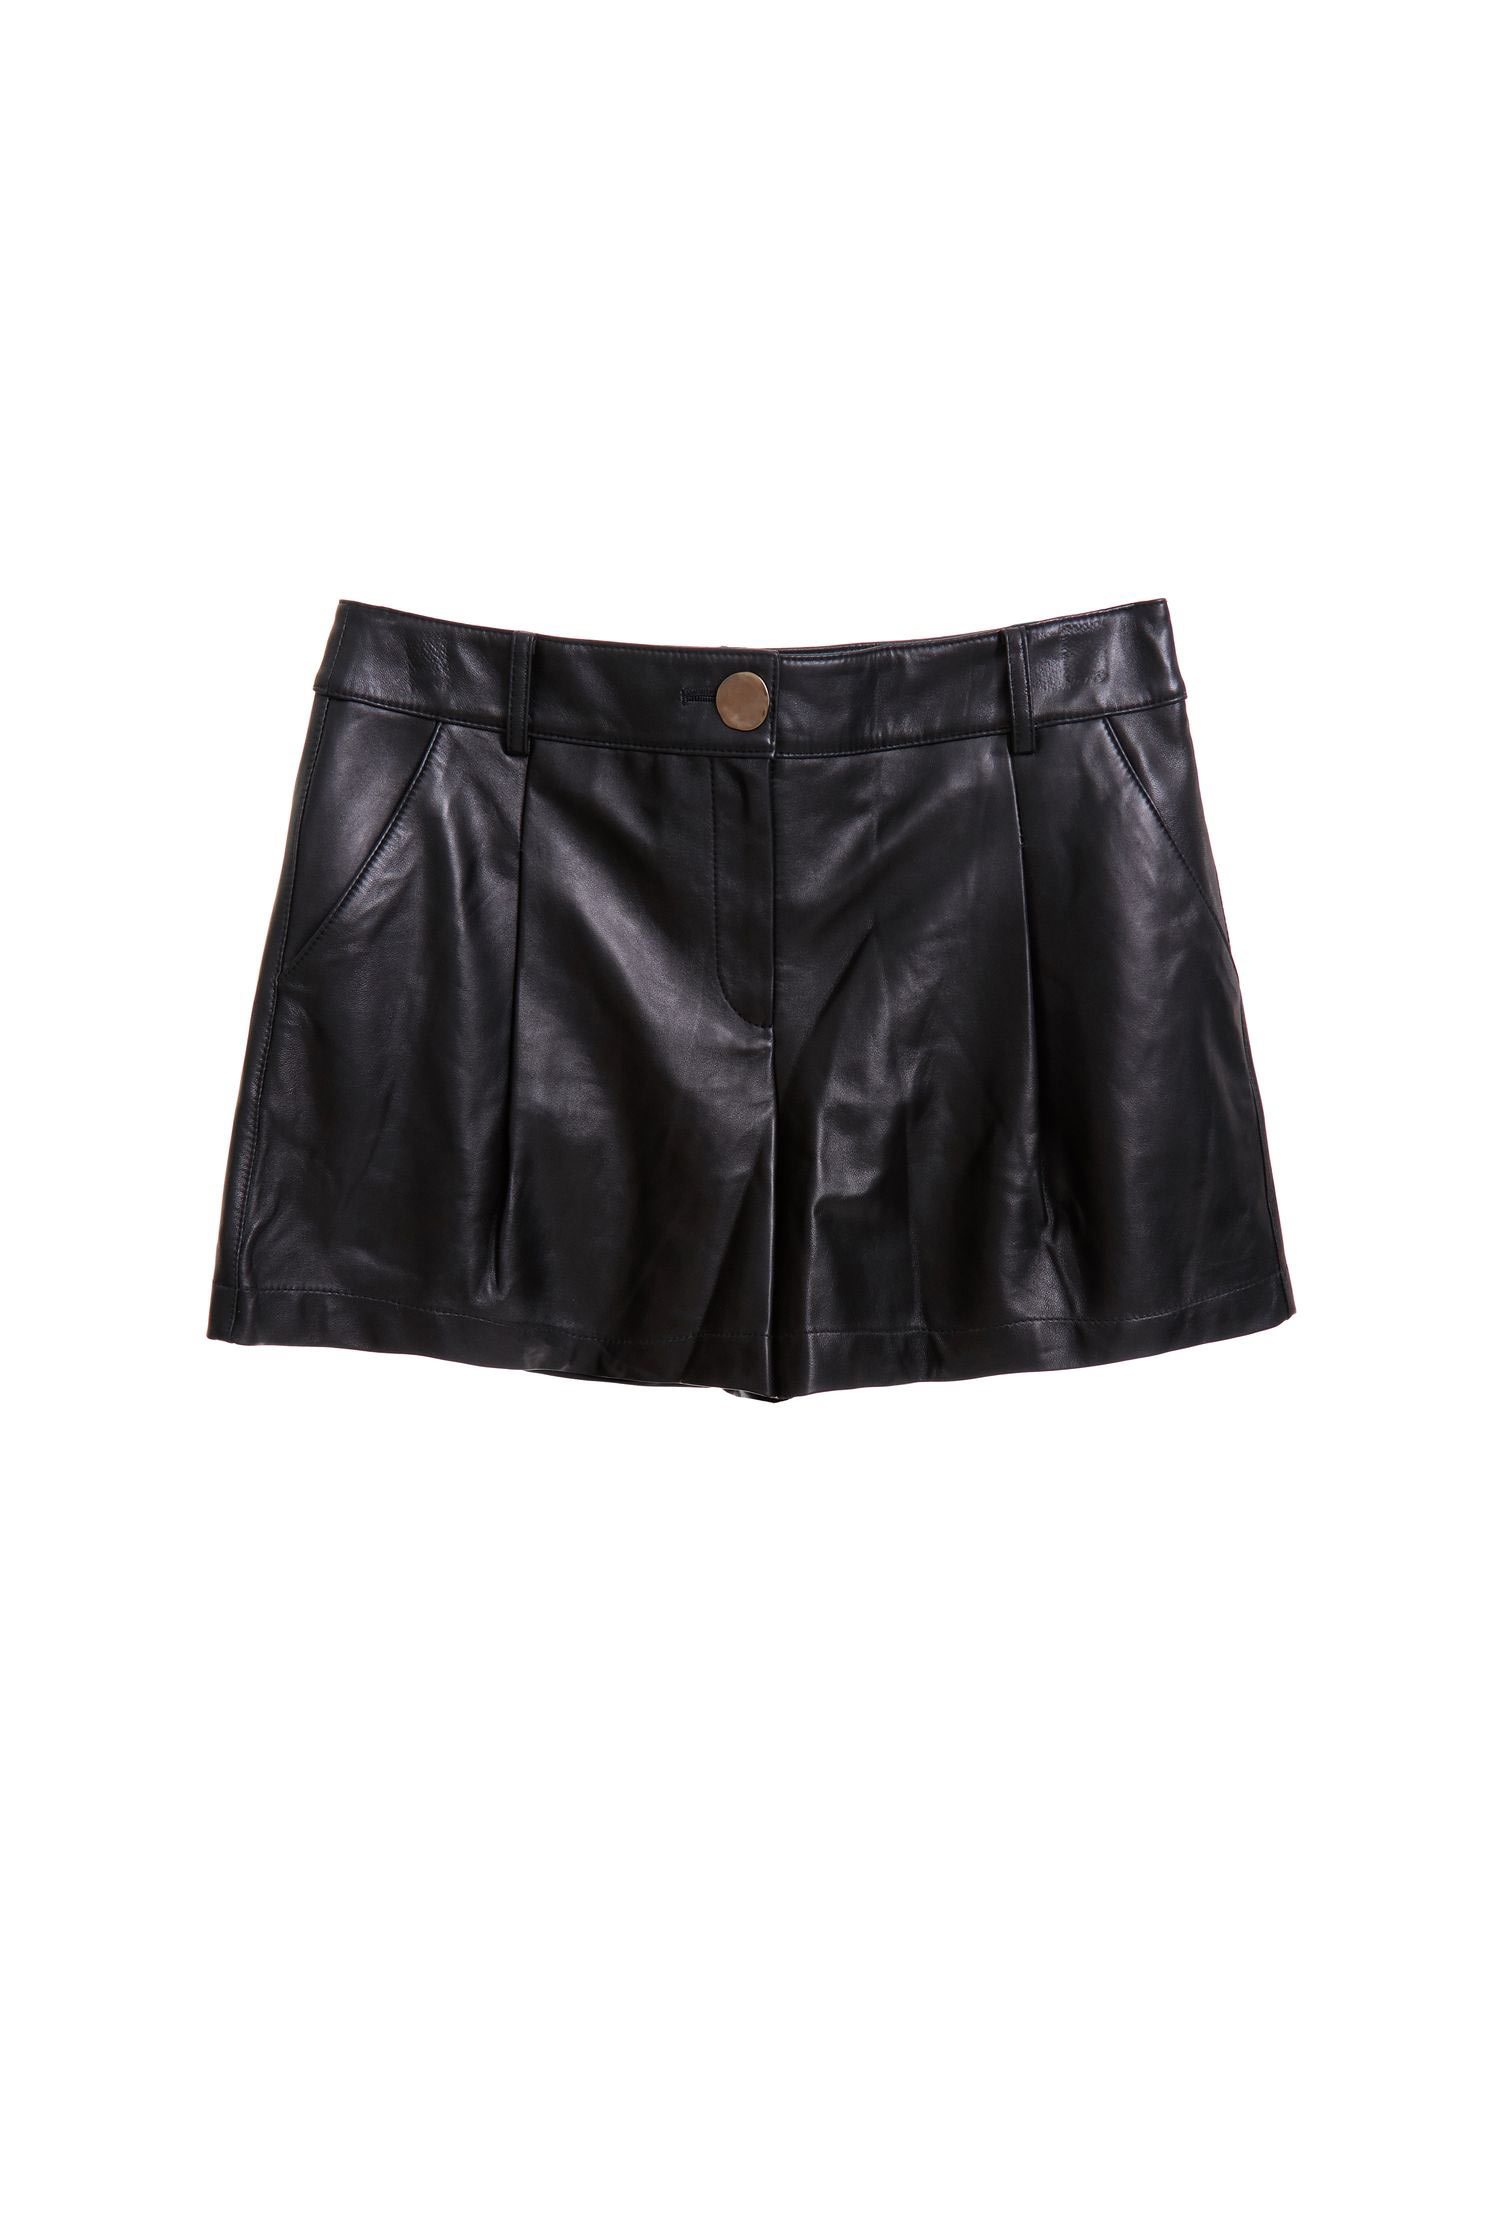 Simple leather shorts